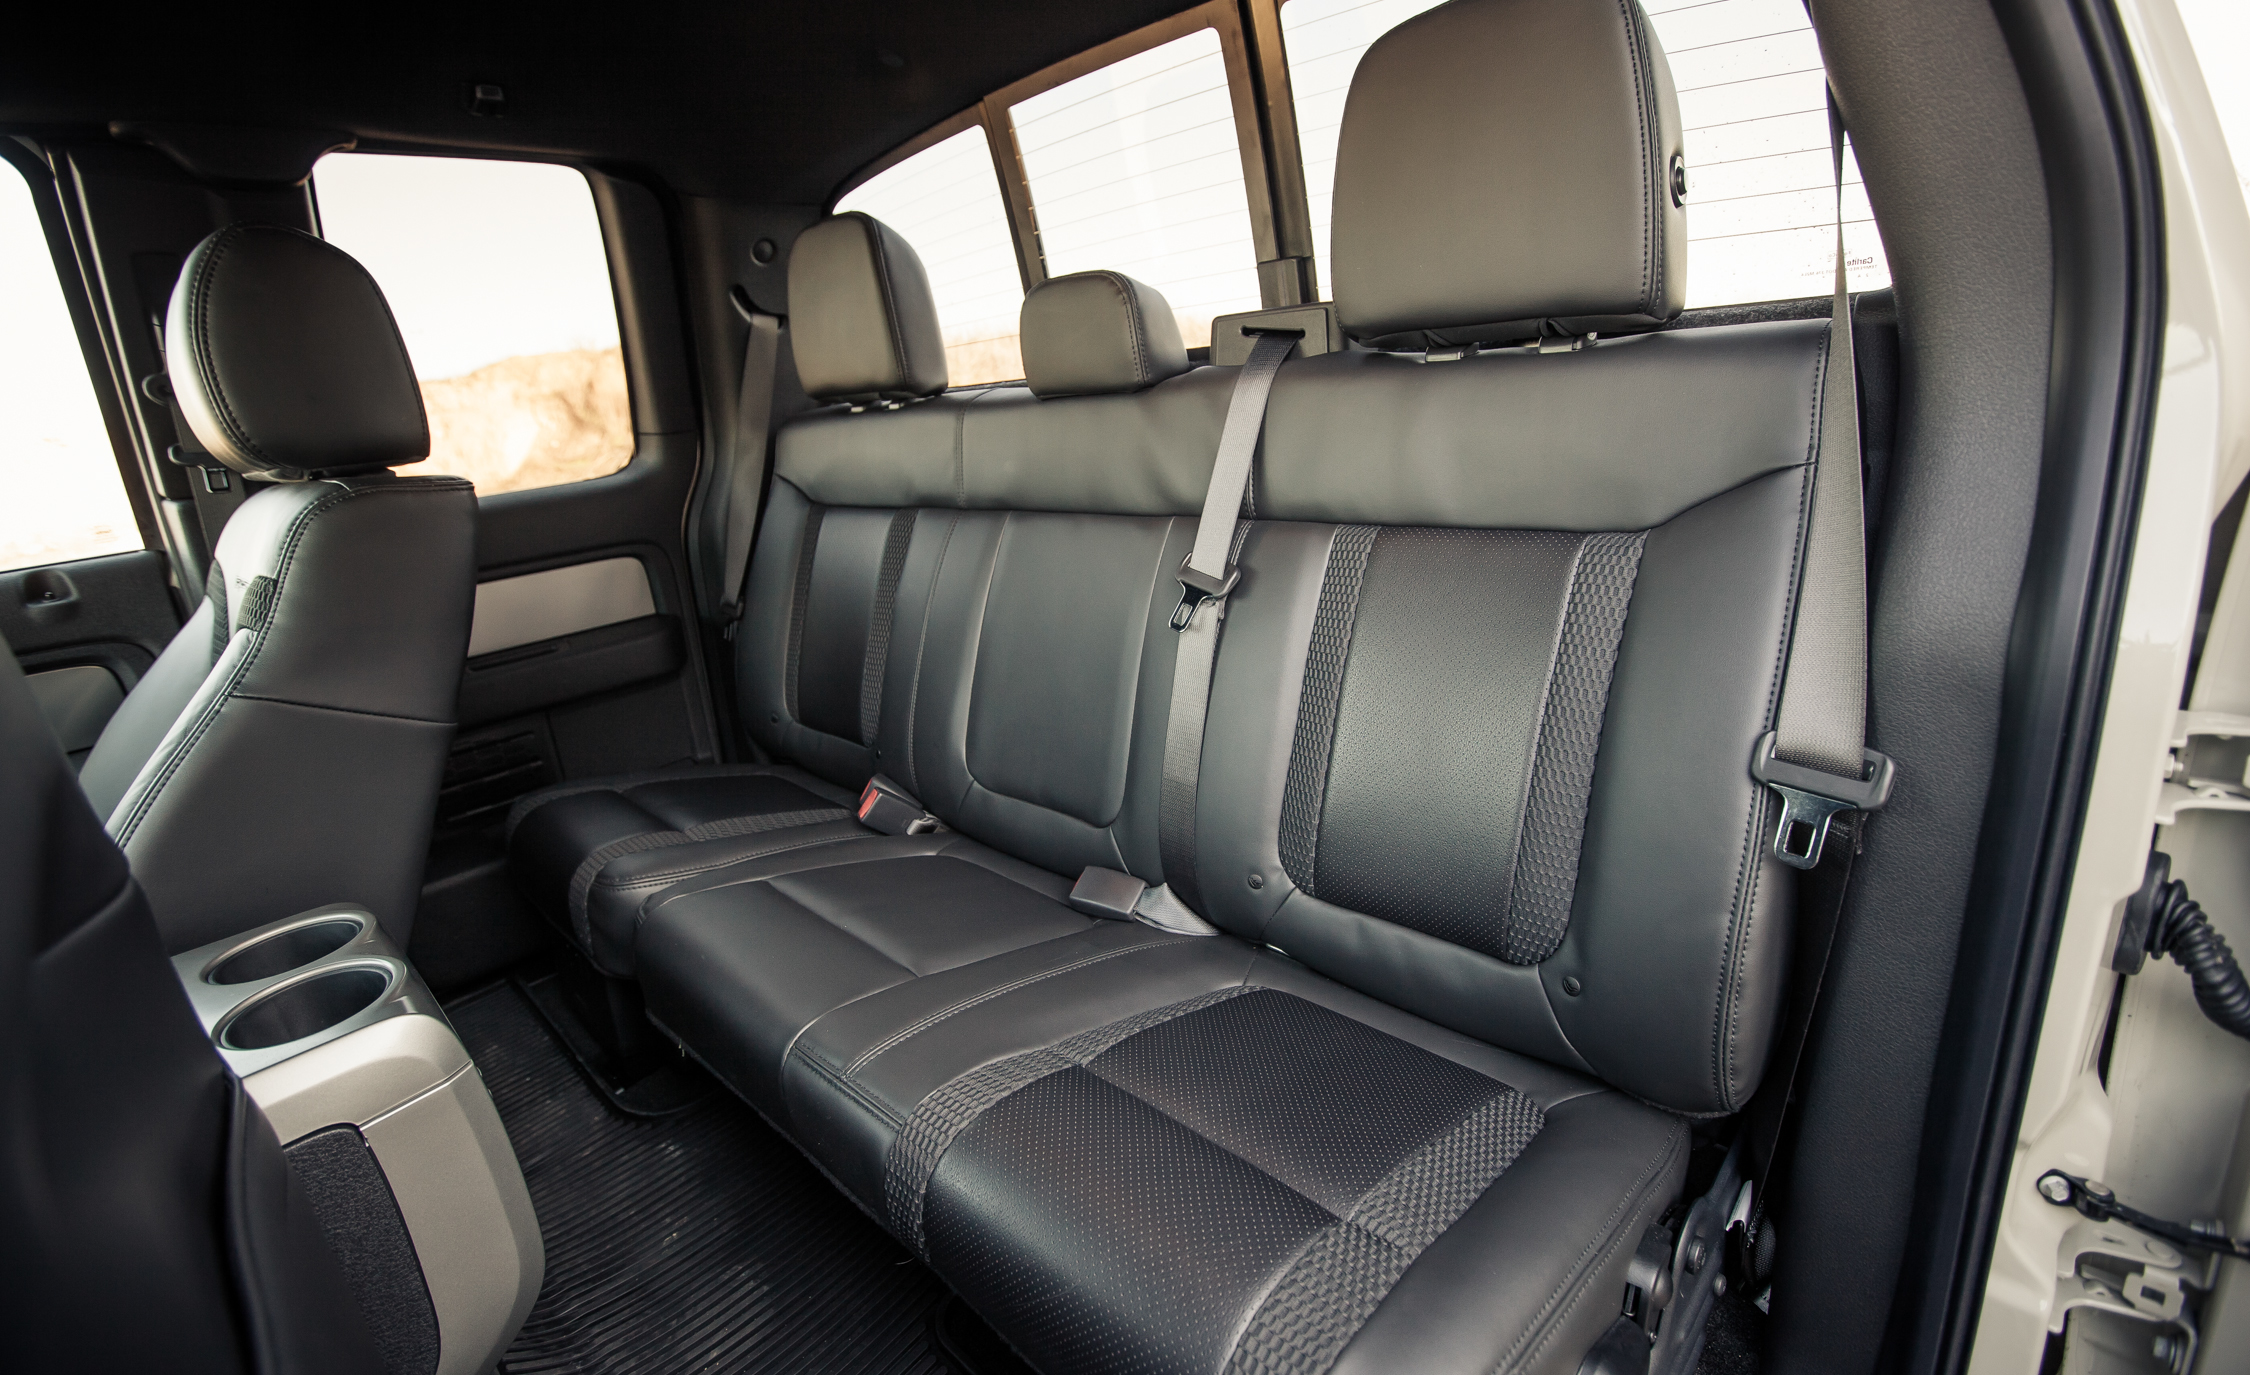 2013 Ford F 150 SVT Raptor SuperCab Interior Seats Rear (Photo 19 of 39)